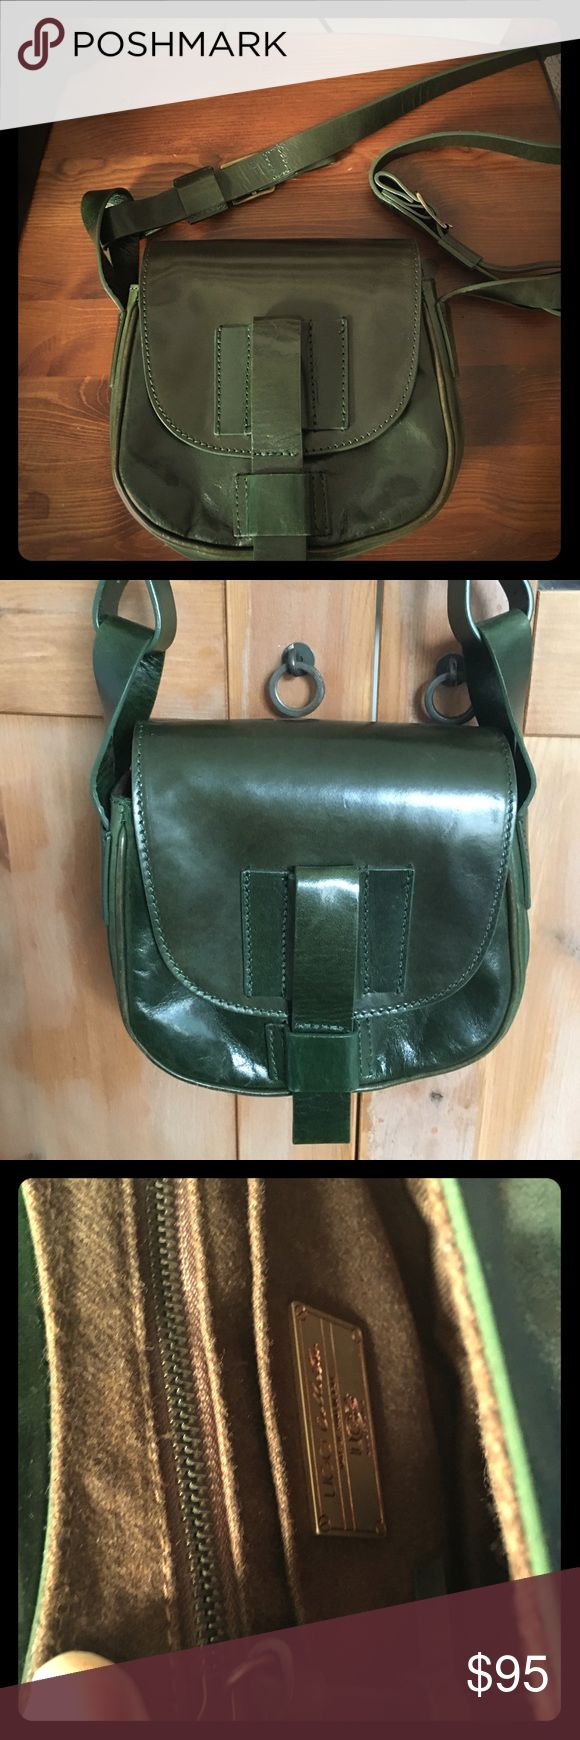 UGG Collection Italian leather handbag UGG Collection green handbag made with Italian leather in Italy with slotted strap closure and internal zipper pocket UGG Bags Shoulder Bags